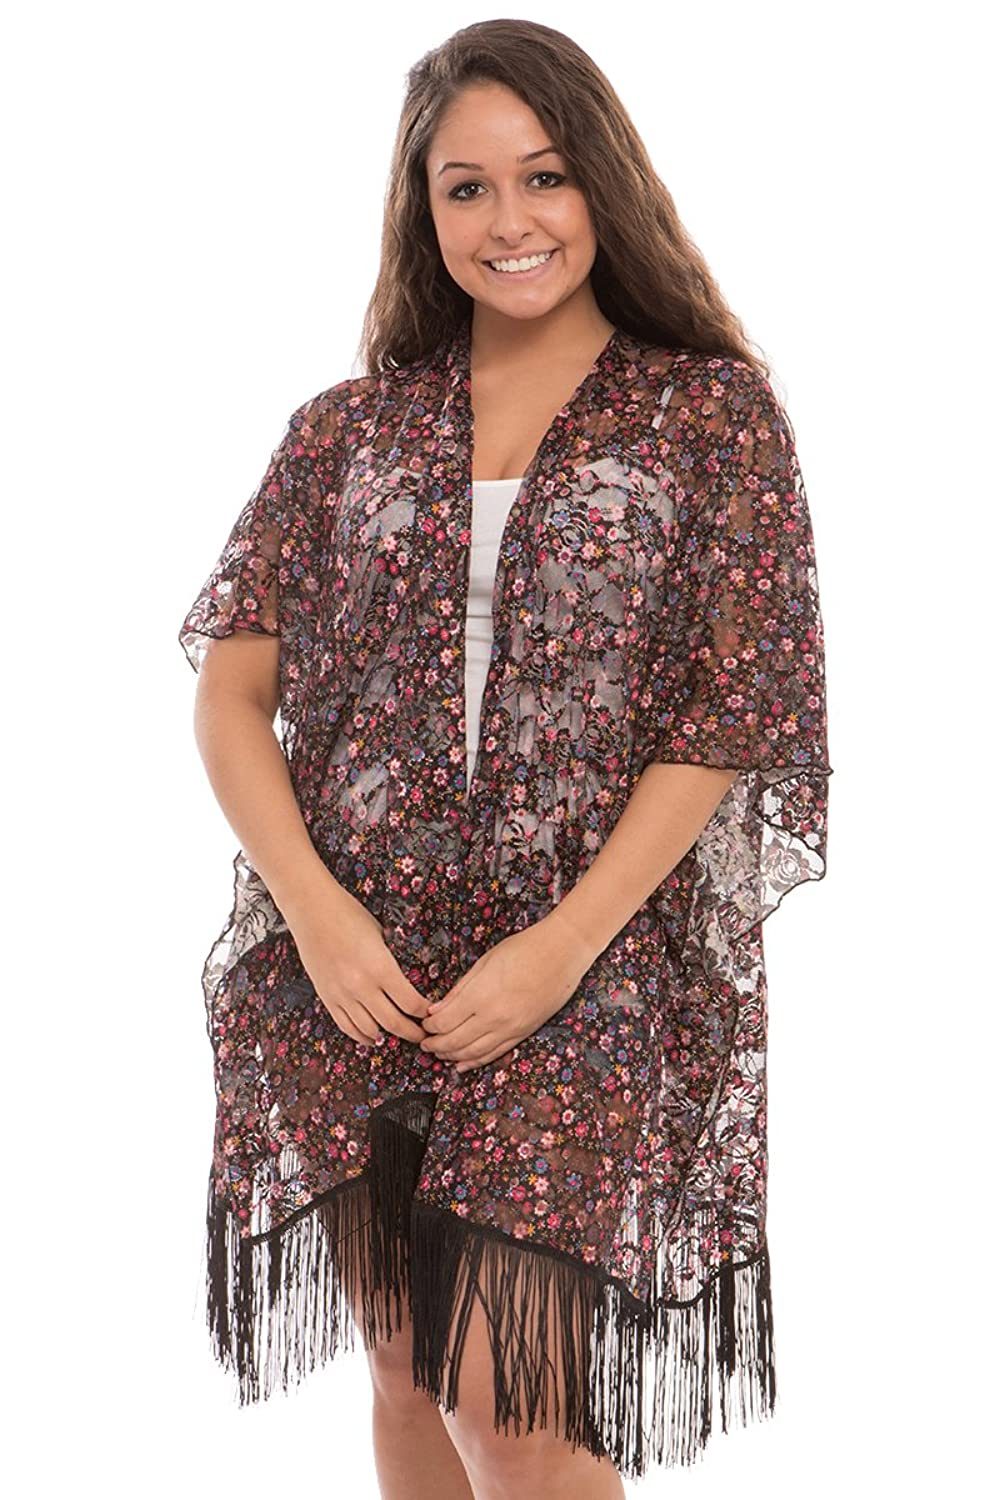 d4e1db369b551 ... Womens Fashion Lightweight Floral Open Front Kimono Cardigan Beach Cover -up. Wholesale Price:15.99 50% Cotton 50% Viscose Size : One size fits most